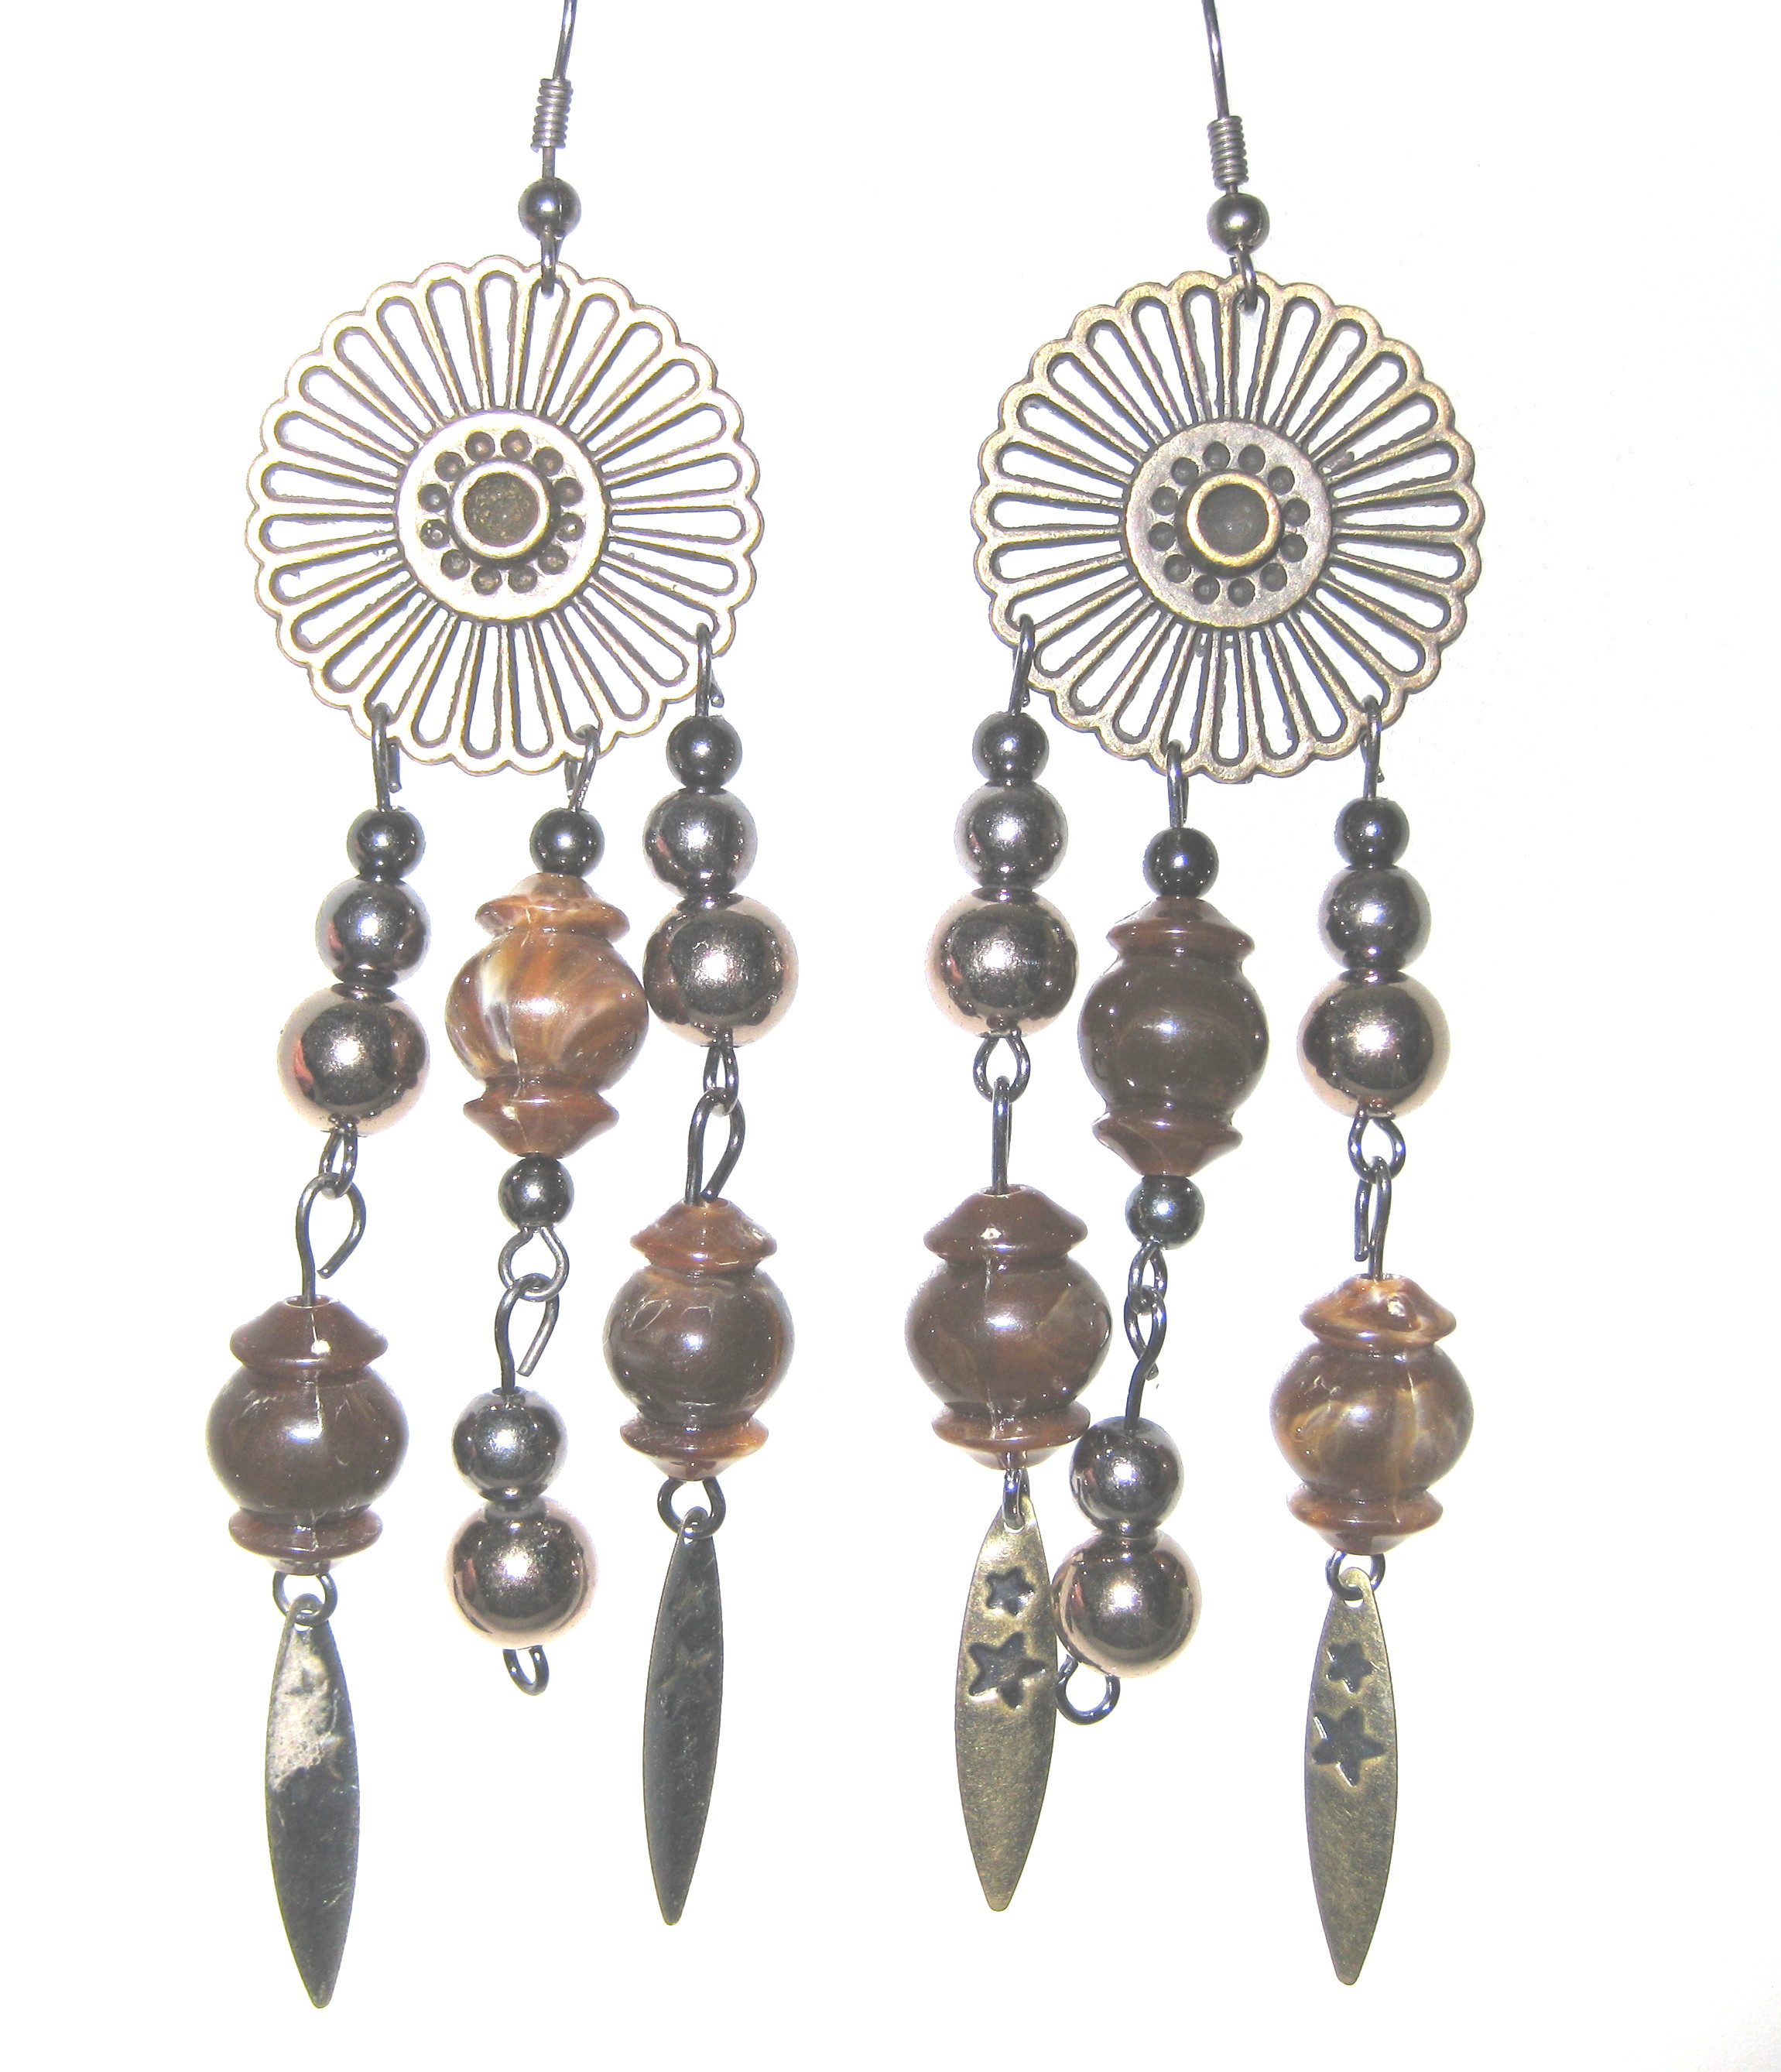 Vintage Chandelier Fashion Earrings -er-fa4